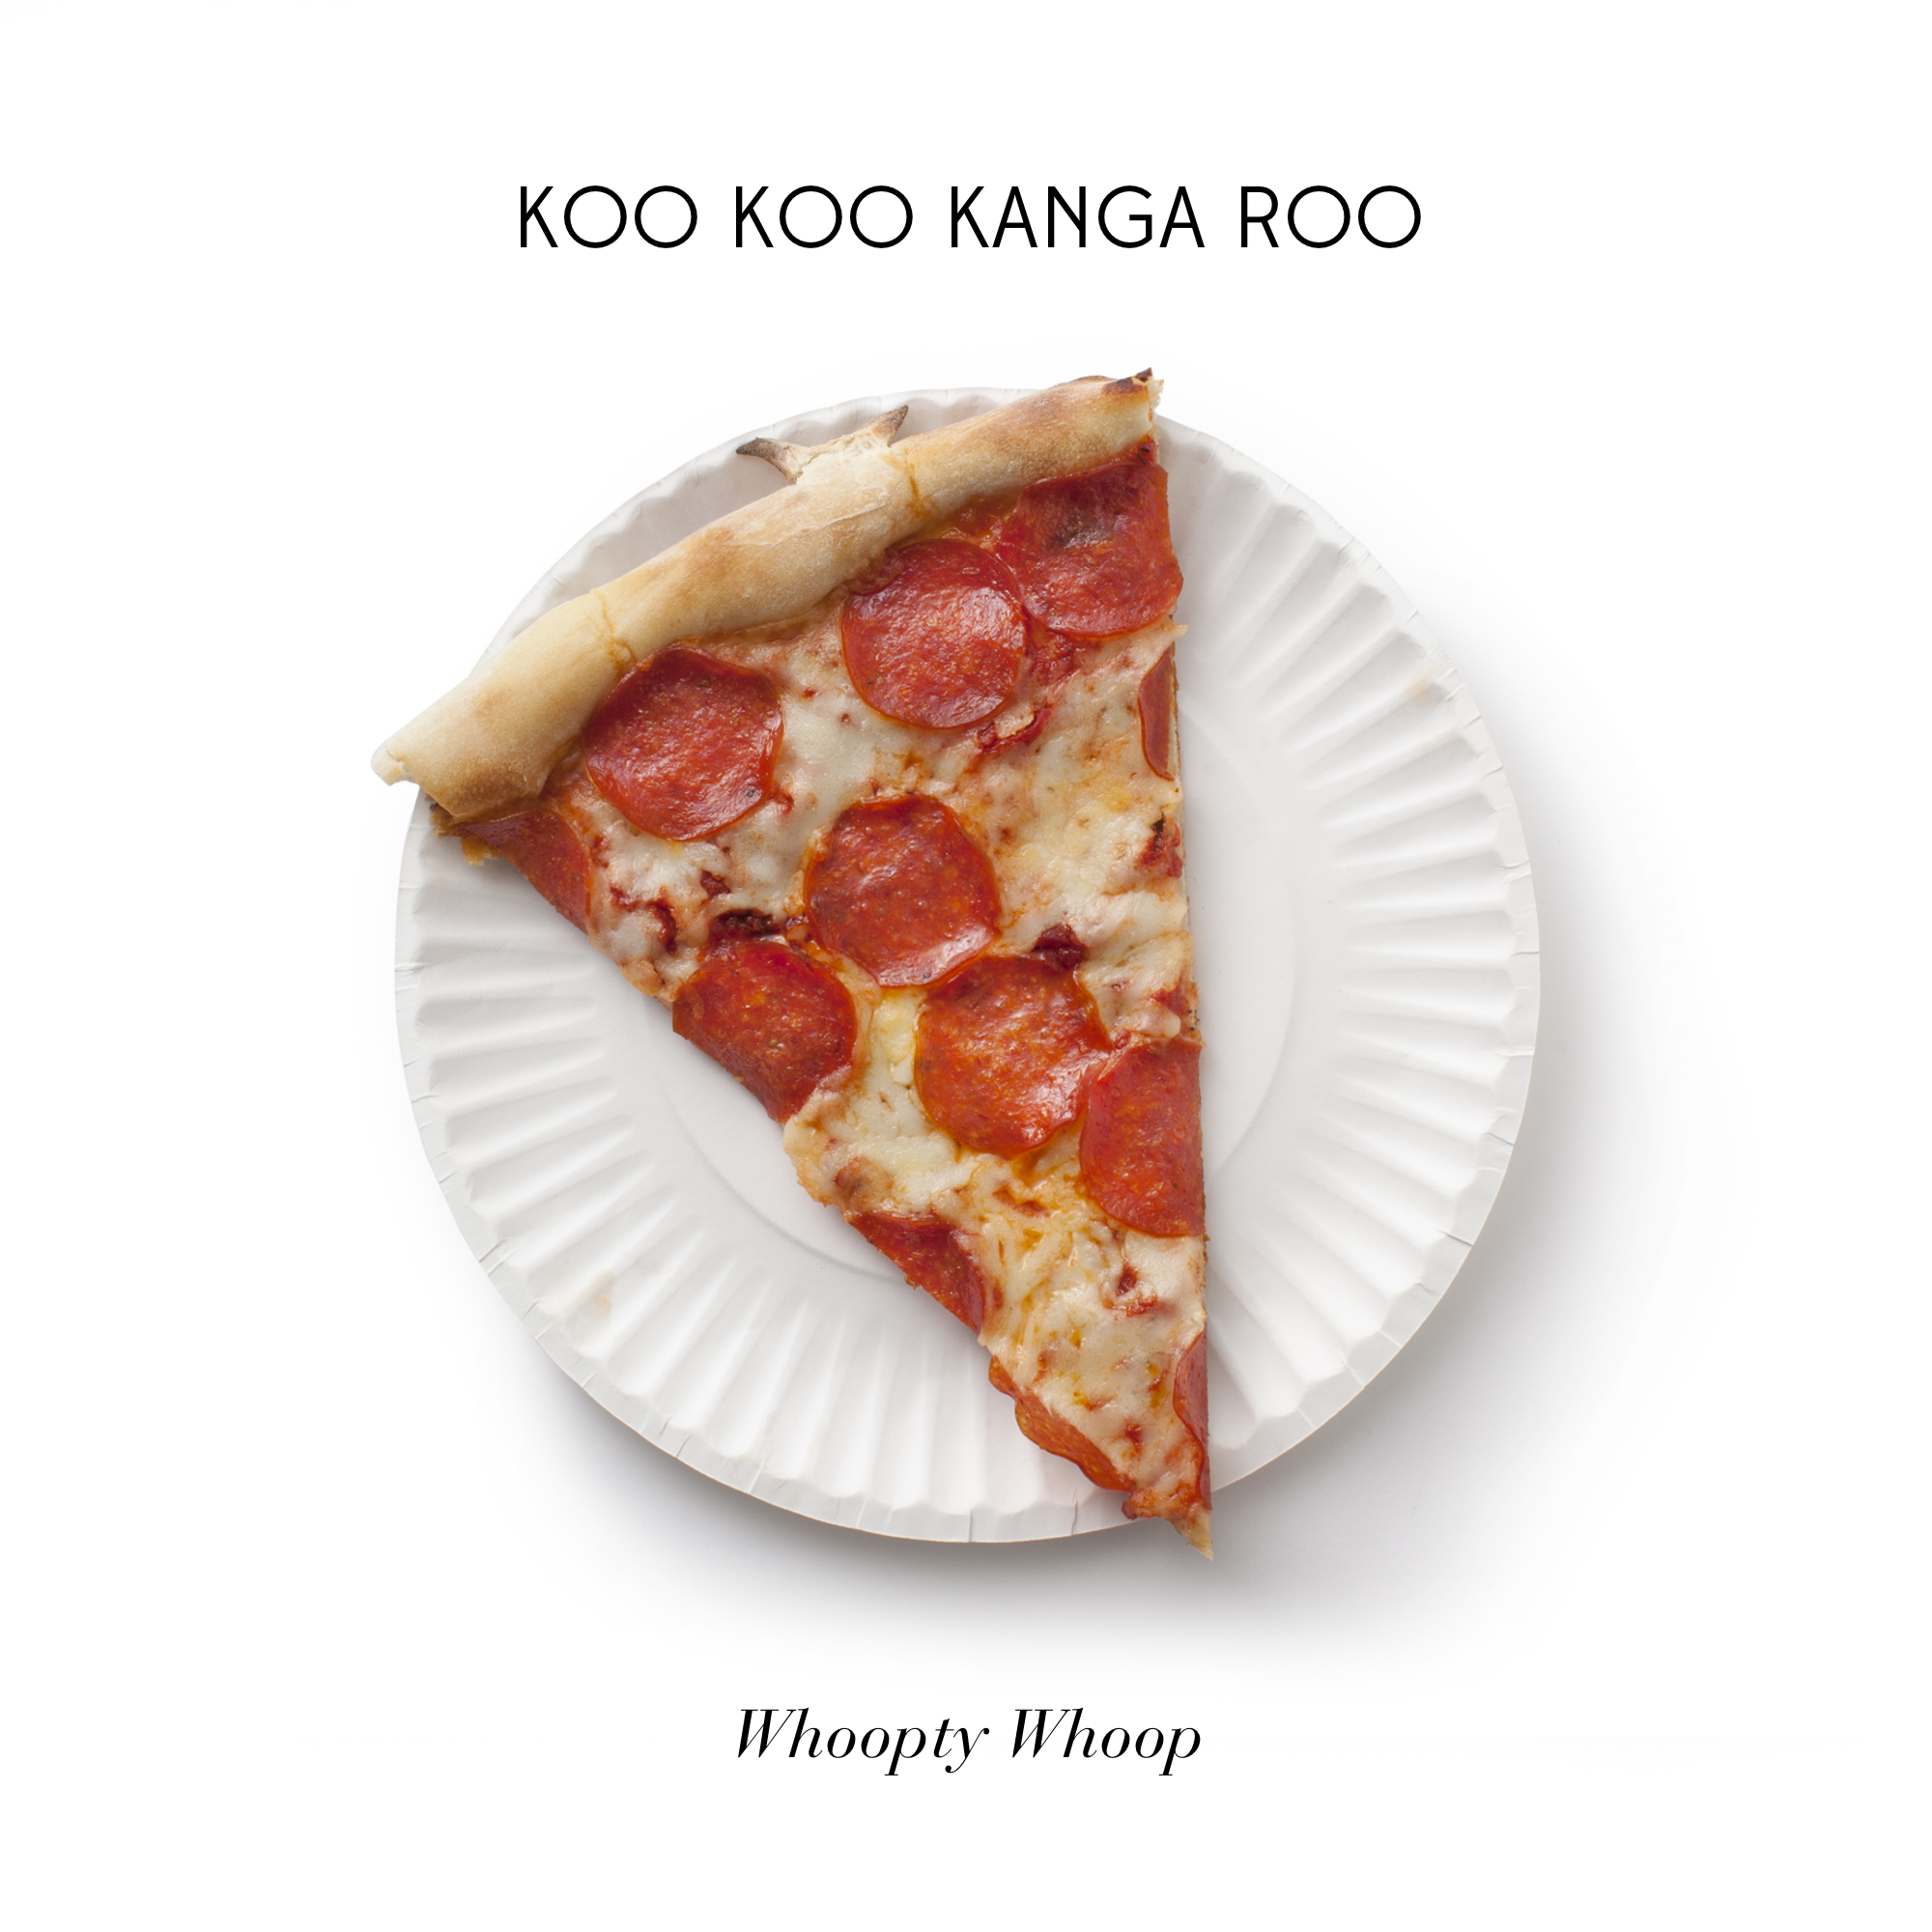 Our new record Whoopty Whoop is out now via Asian Man Records imprint Fun Fun Records.   1. All I Eat Is Pizza   2. Fanny Pack   3. The Coolest Person   4. POGO   5. Get Yo Body Movin' 6. Shake It Well ft.  P.O.S.   7. I Like Cake  8. Left 2 Right 9. Unibrow 10. Superheroes Unite  Produced by  Neil Zumwalde   Artwork by  Lacey Criswell Photography   Vinyl out in June here:  http://asianmanrecords.storenvy.com/   Get it everywhere.